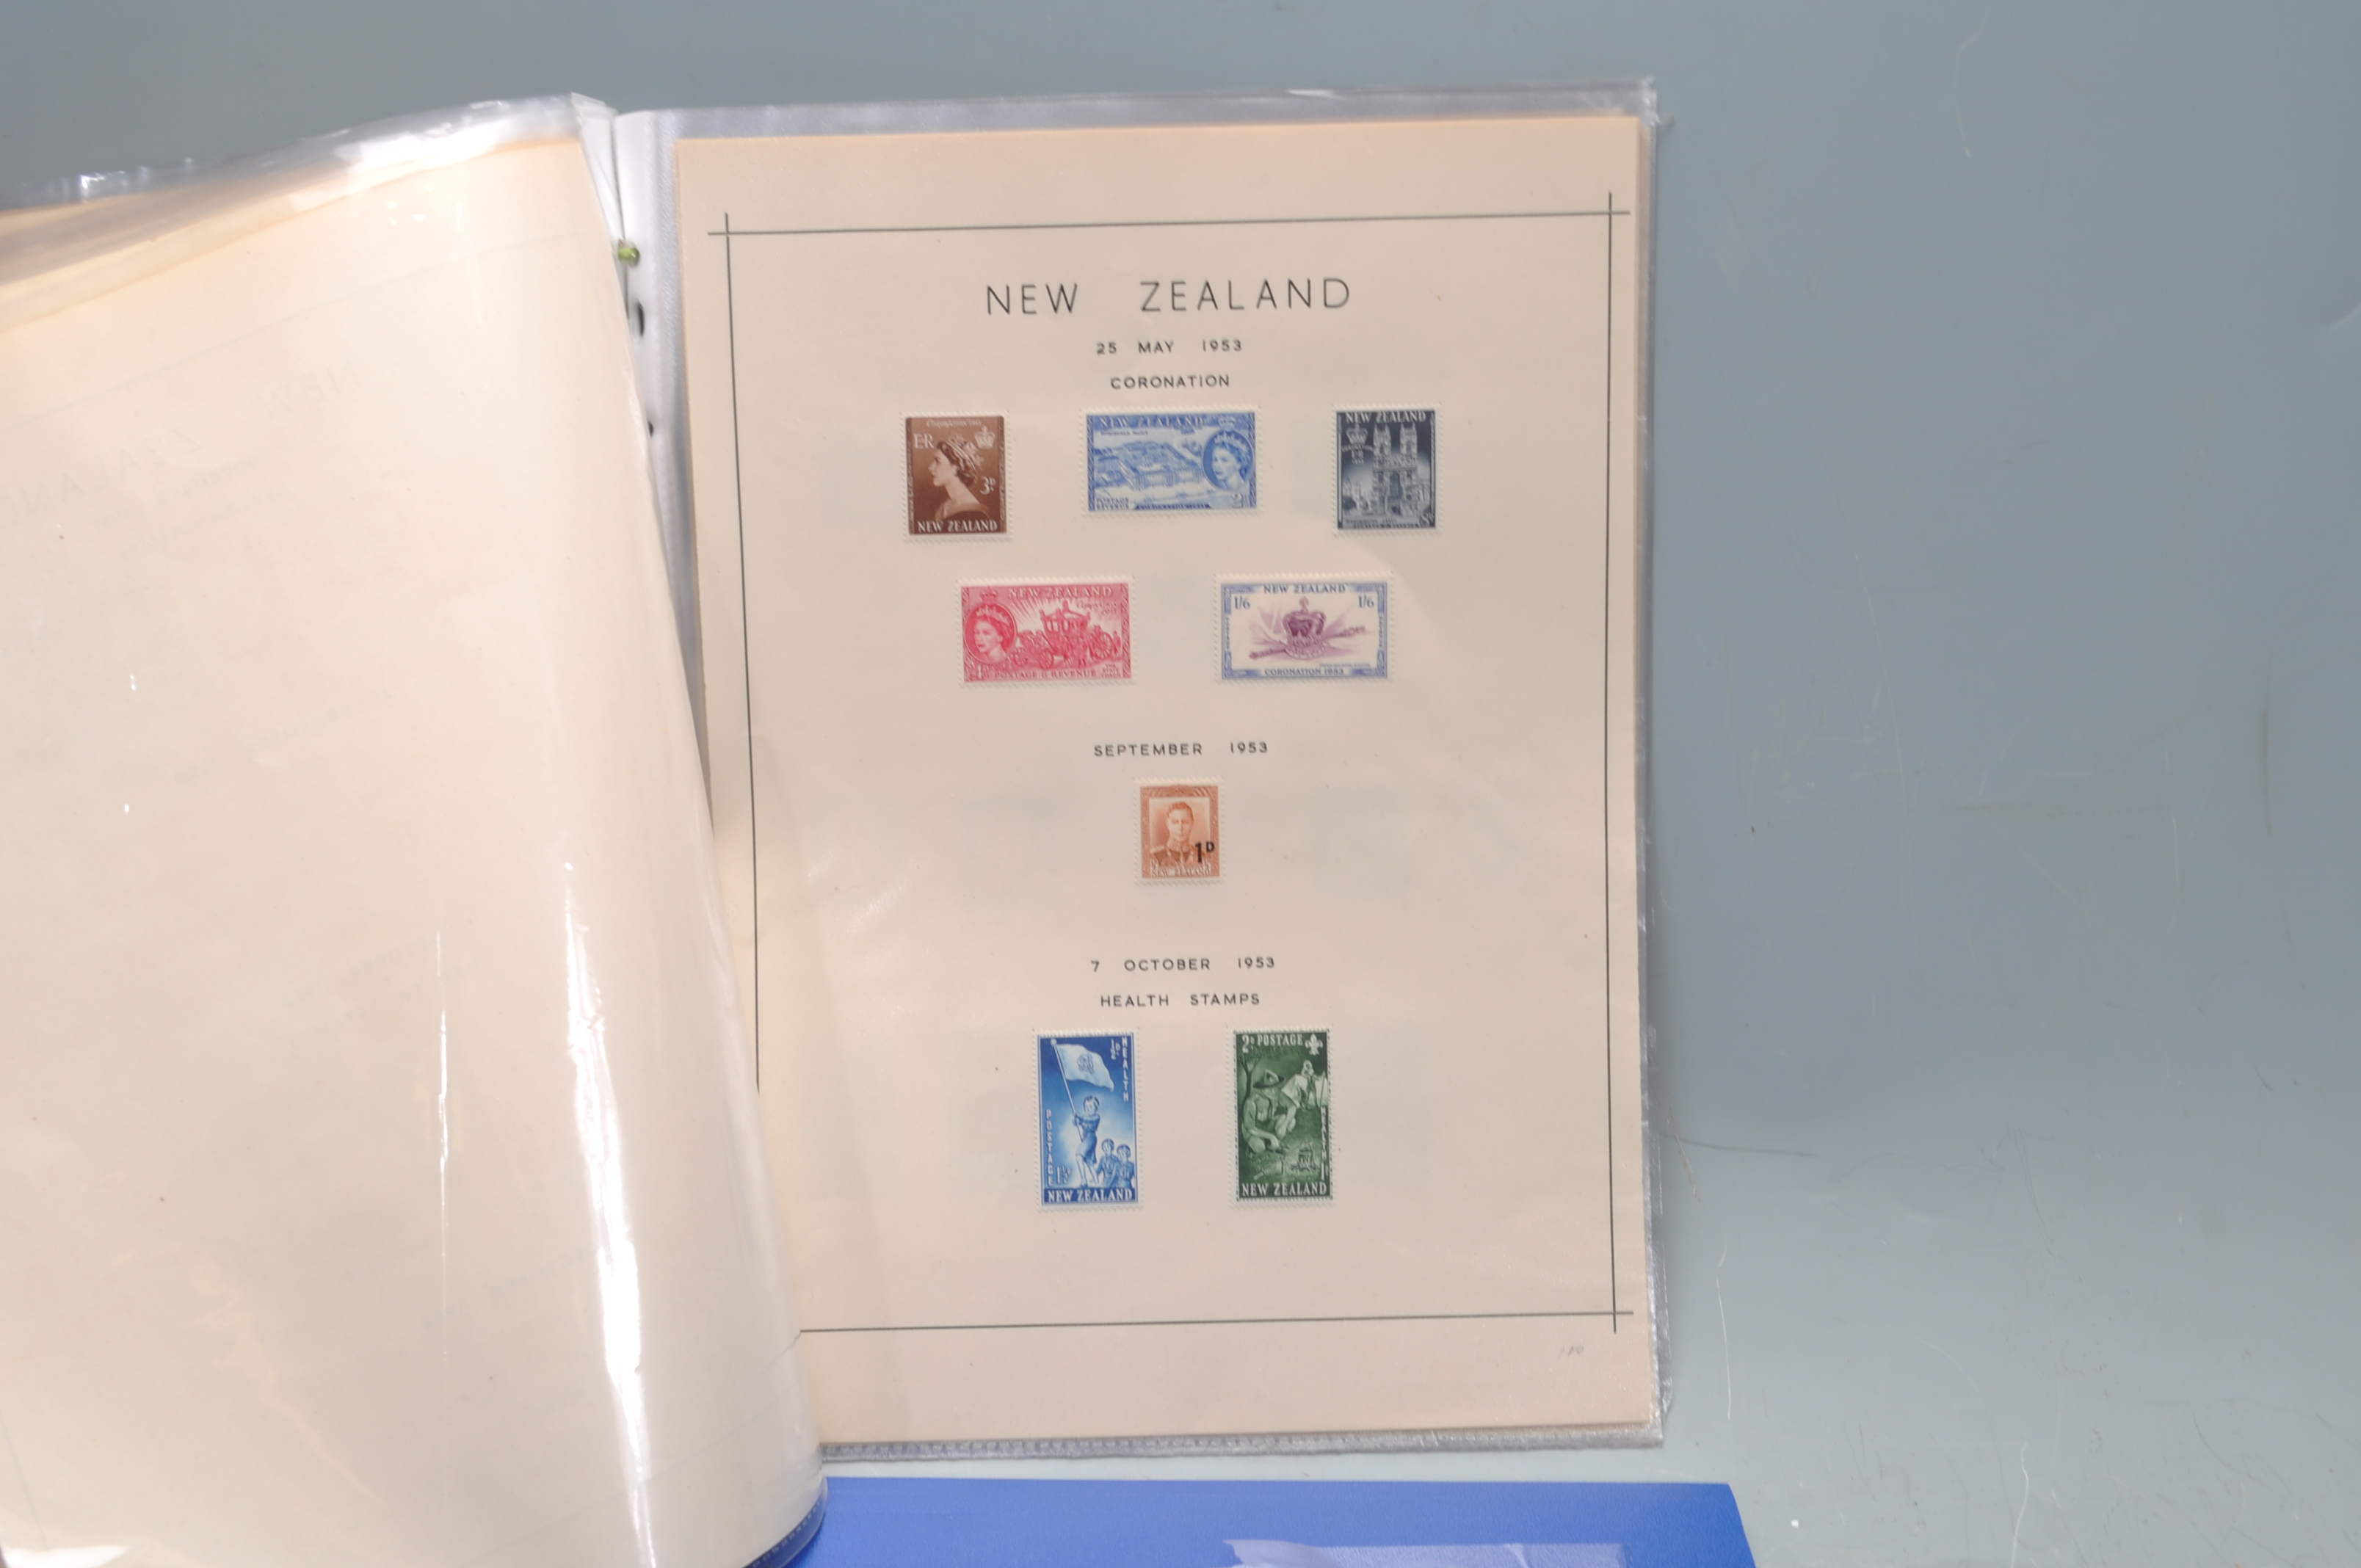 NEW ZEALAND MINT COLLECTION OF POSTAGE STAMPS - Image 7 of 8